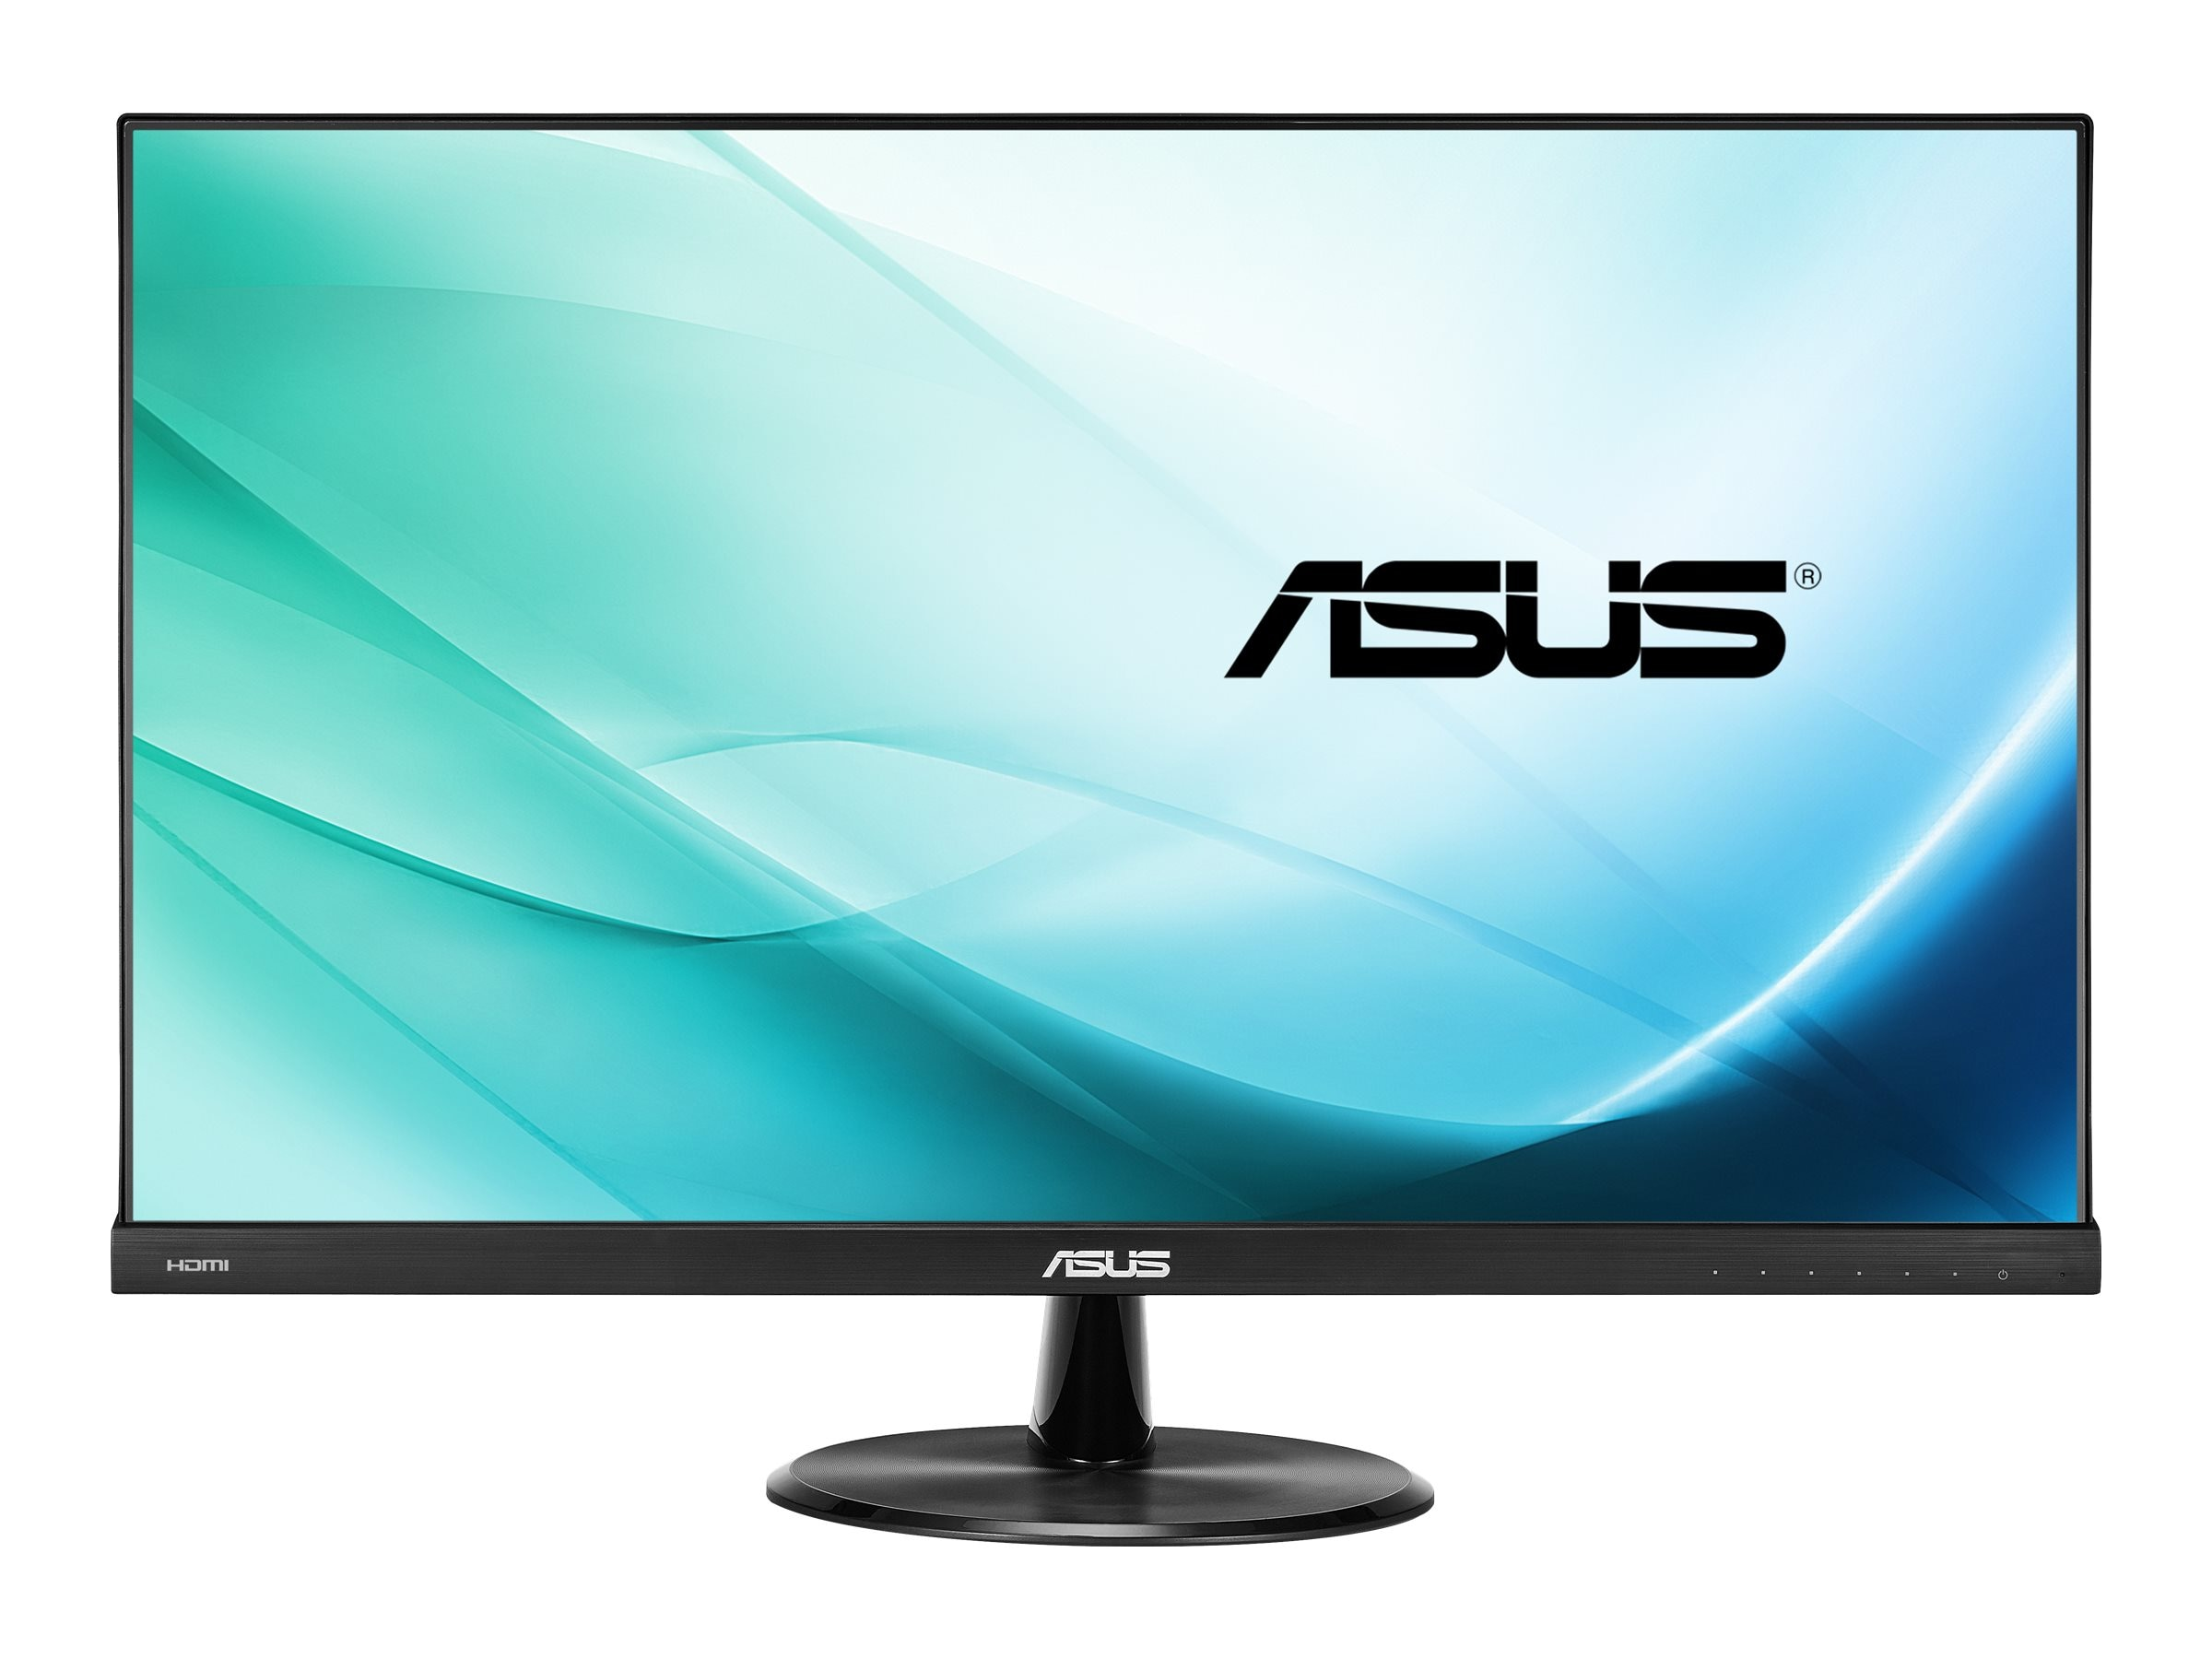 Asus 23 VP239H-P Full HD LED-LCD Monitor, Black, VP239H-P